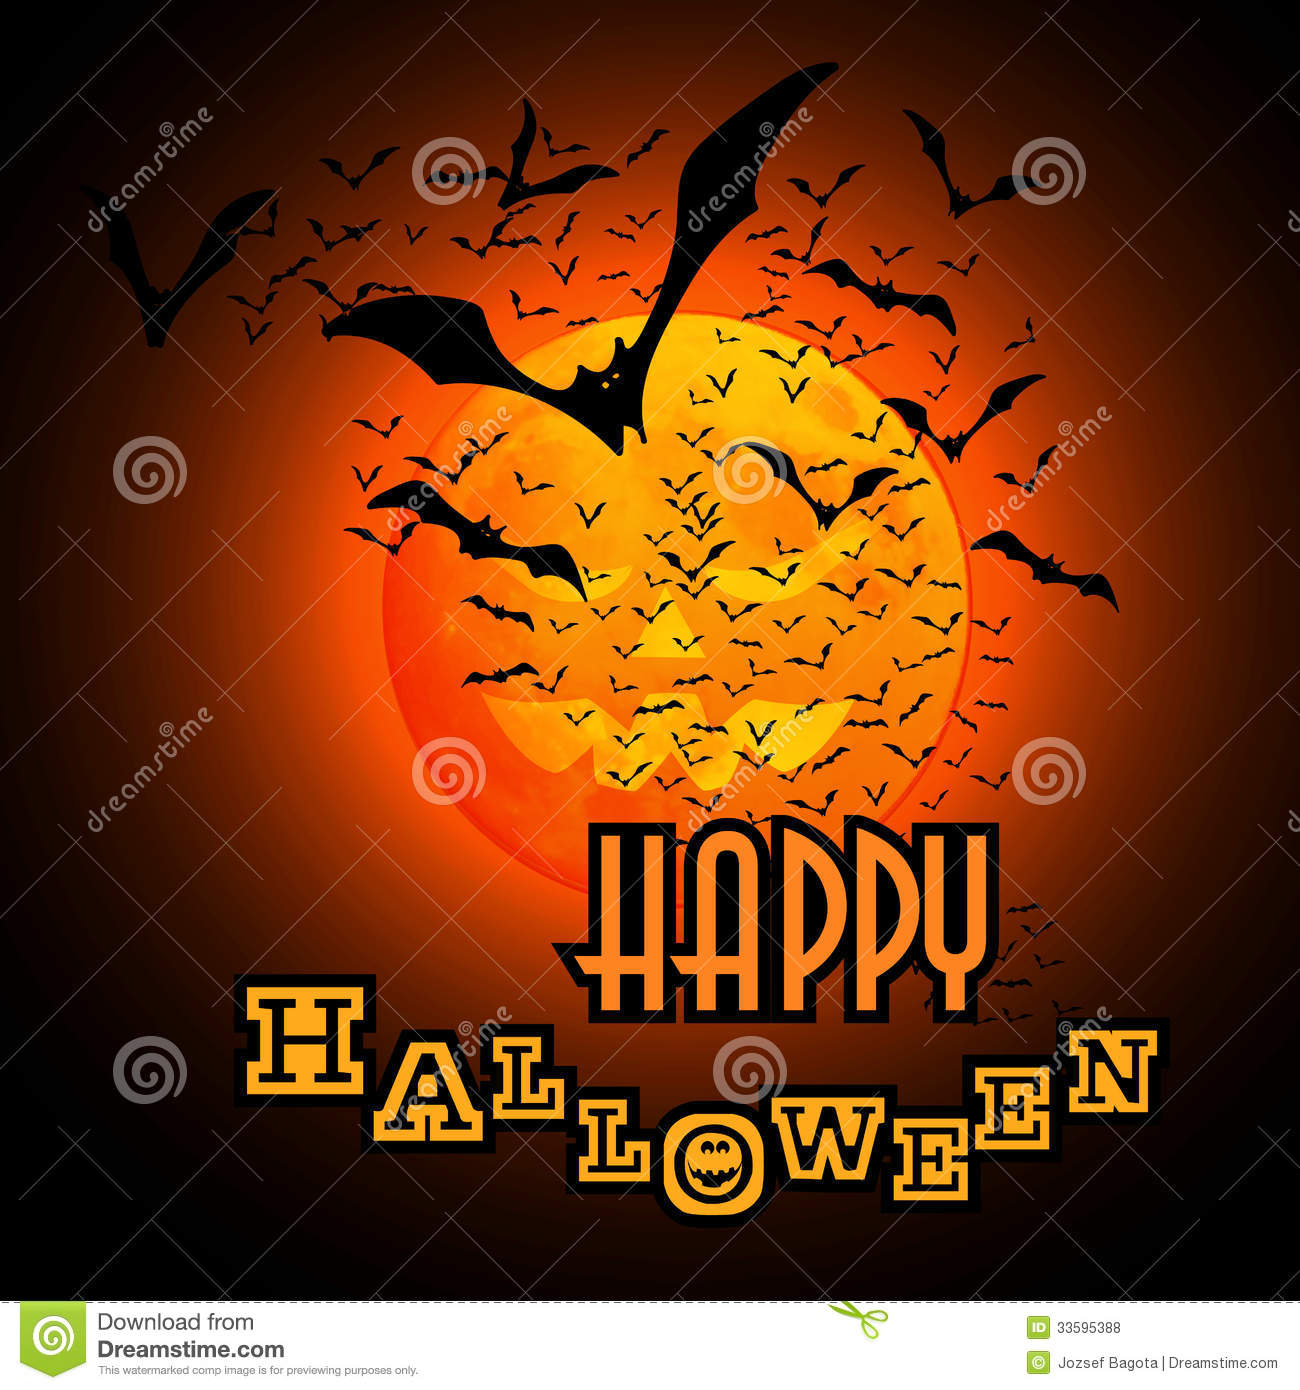 halloween flyer or cover design stock vector - illustration of glow